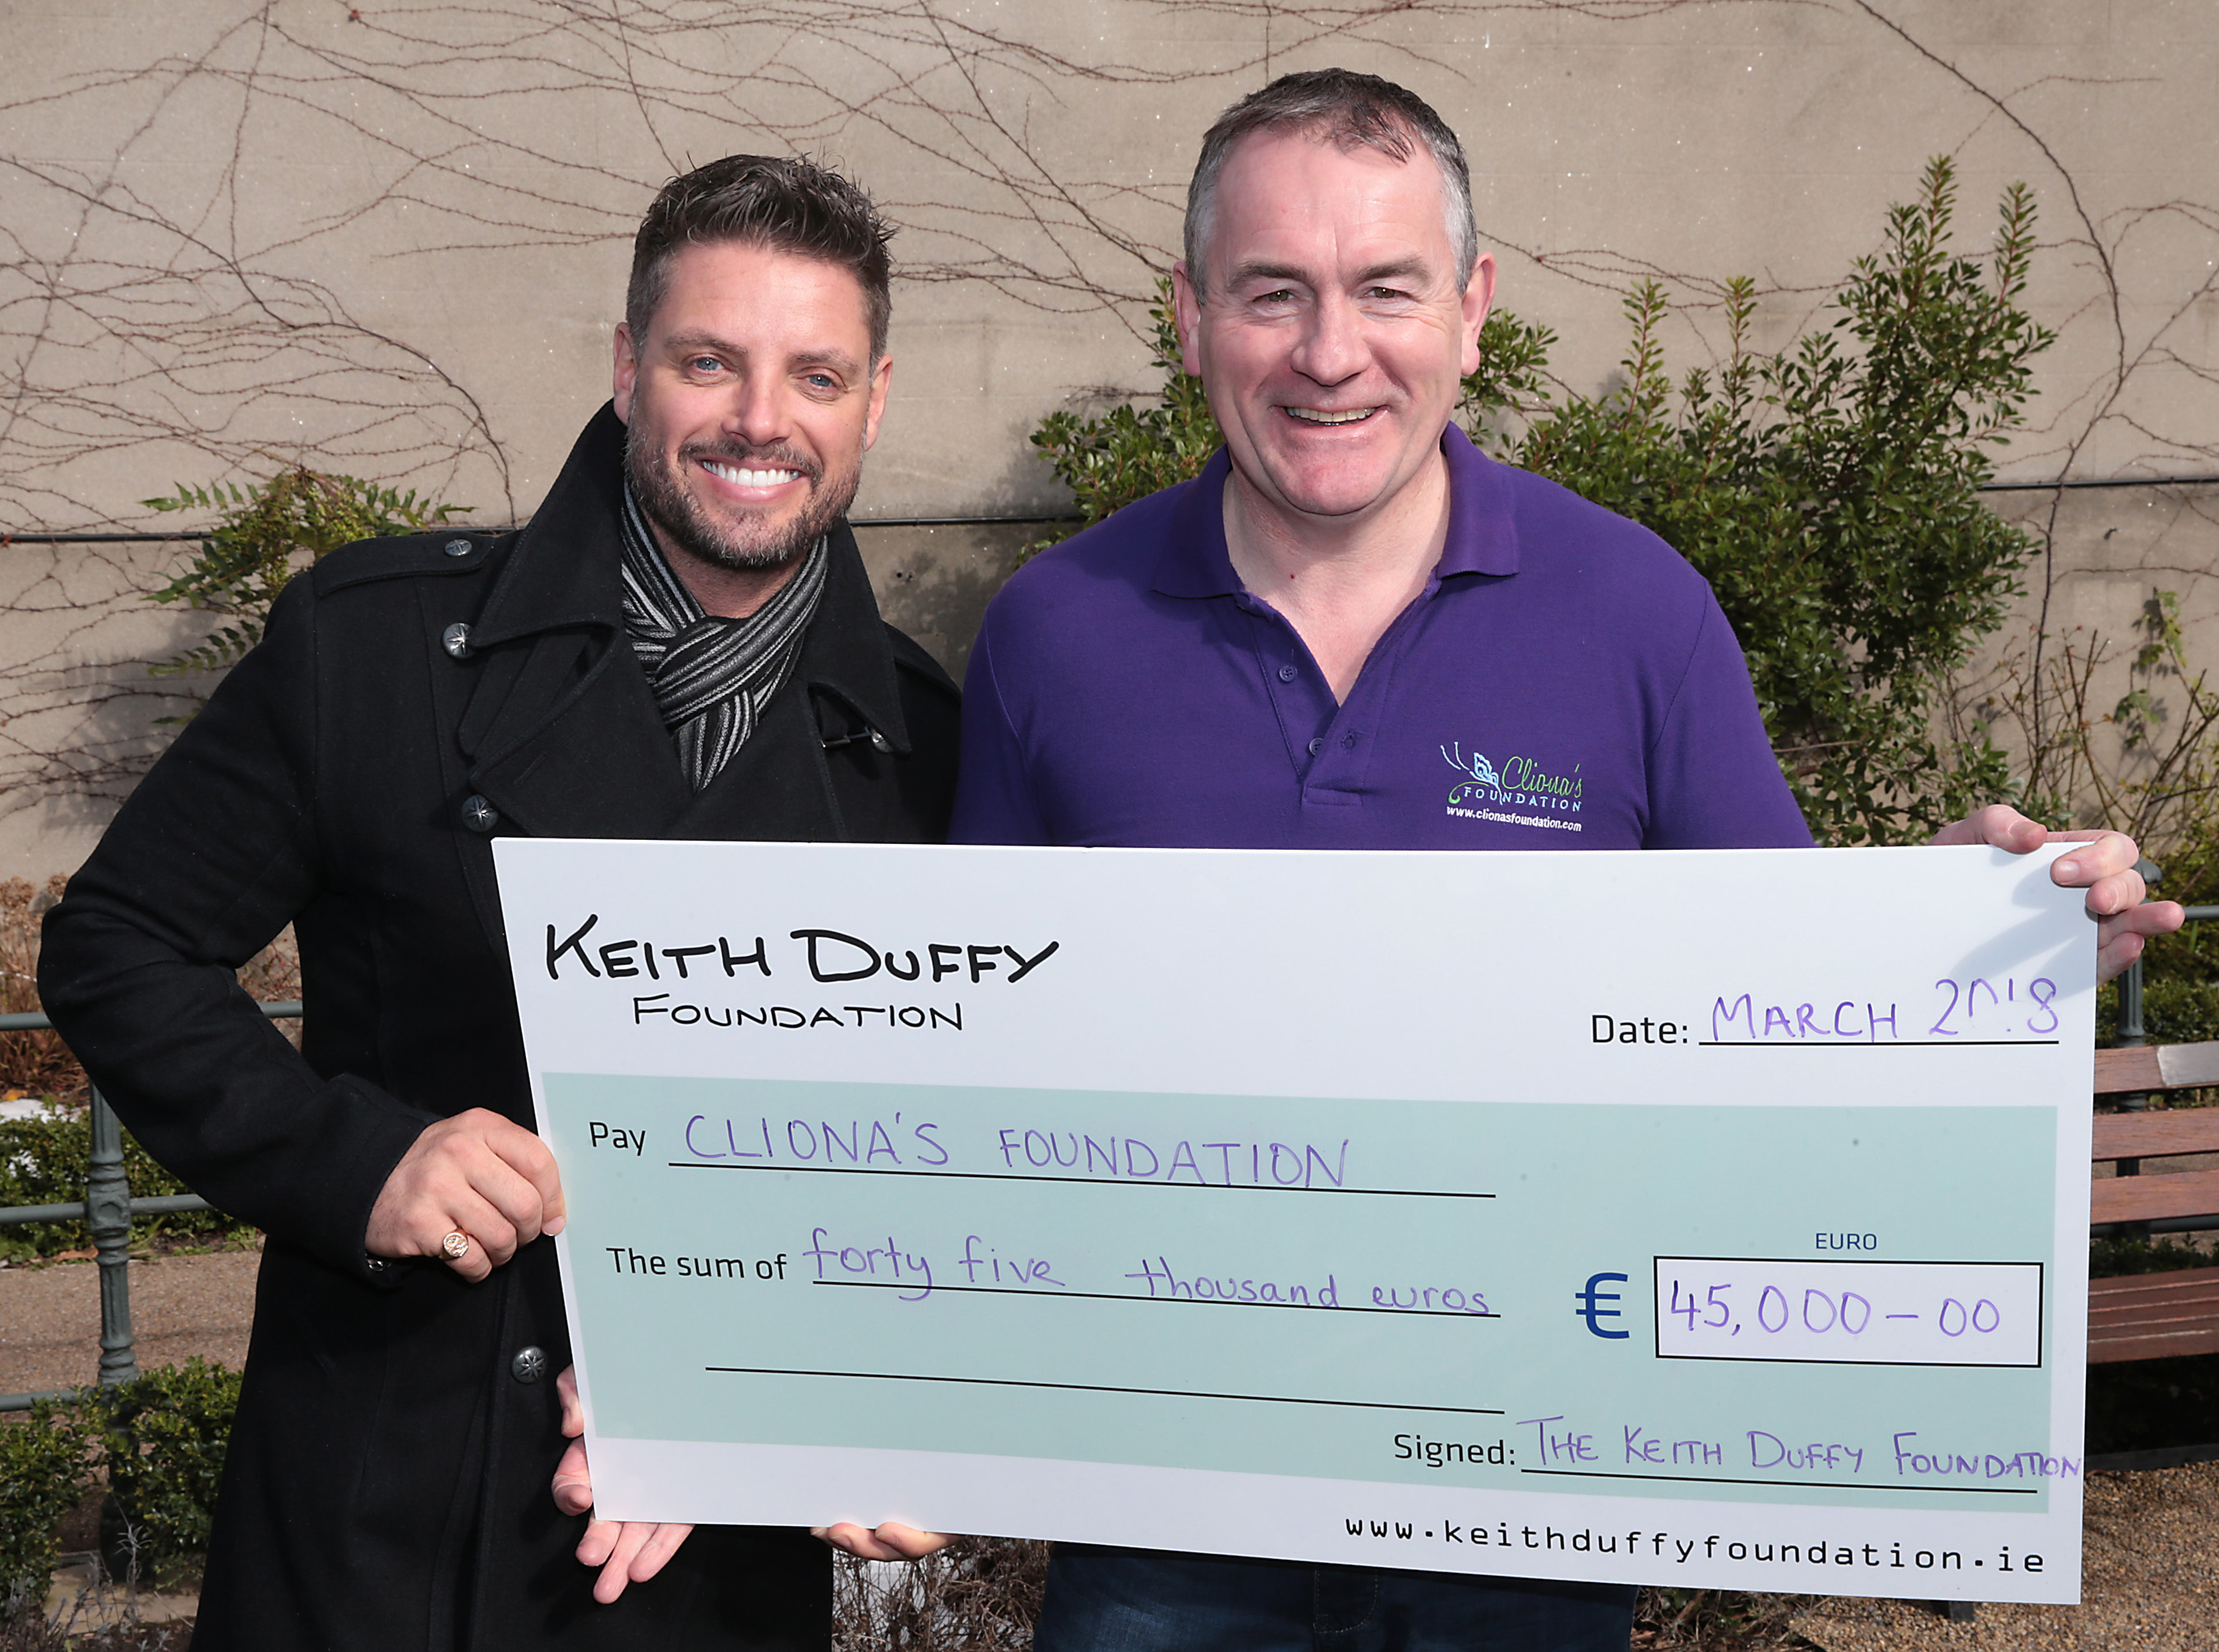 Keith Duffy and Brendan Ring raising funds for families with sick children. Charity Ireland.